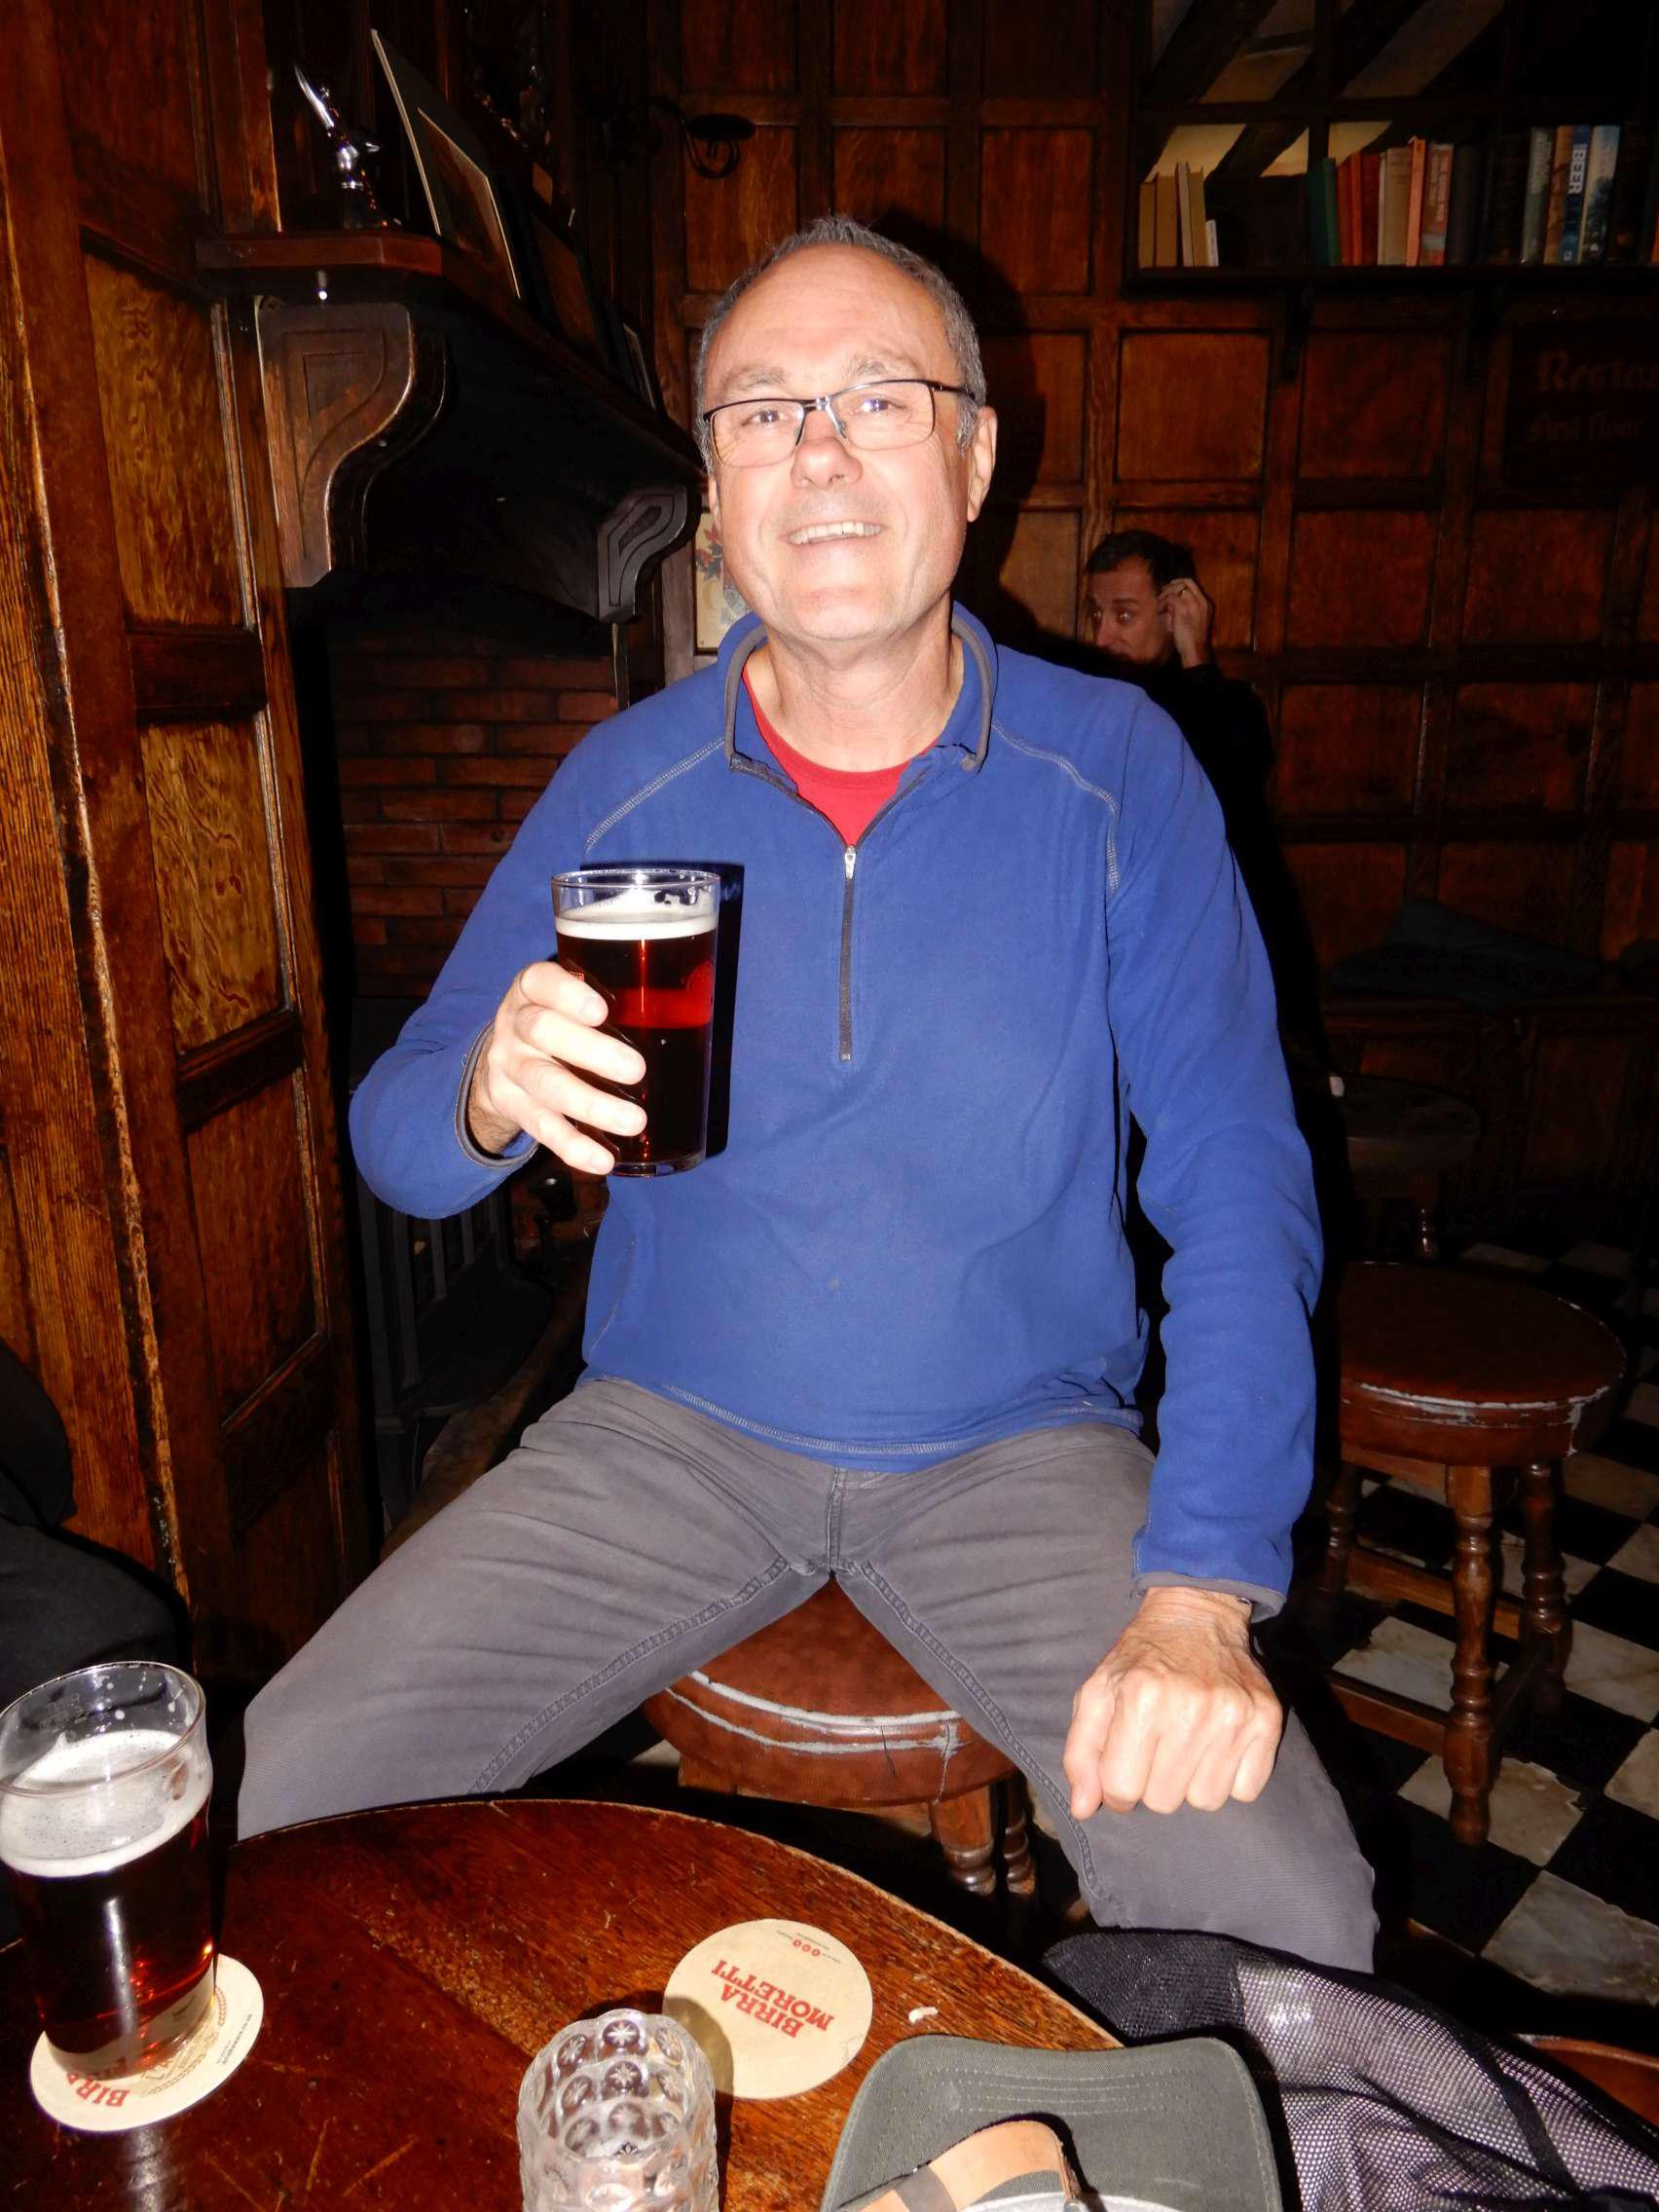 Roger, enjoying his pint